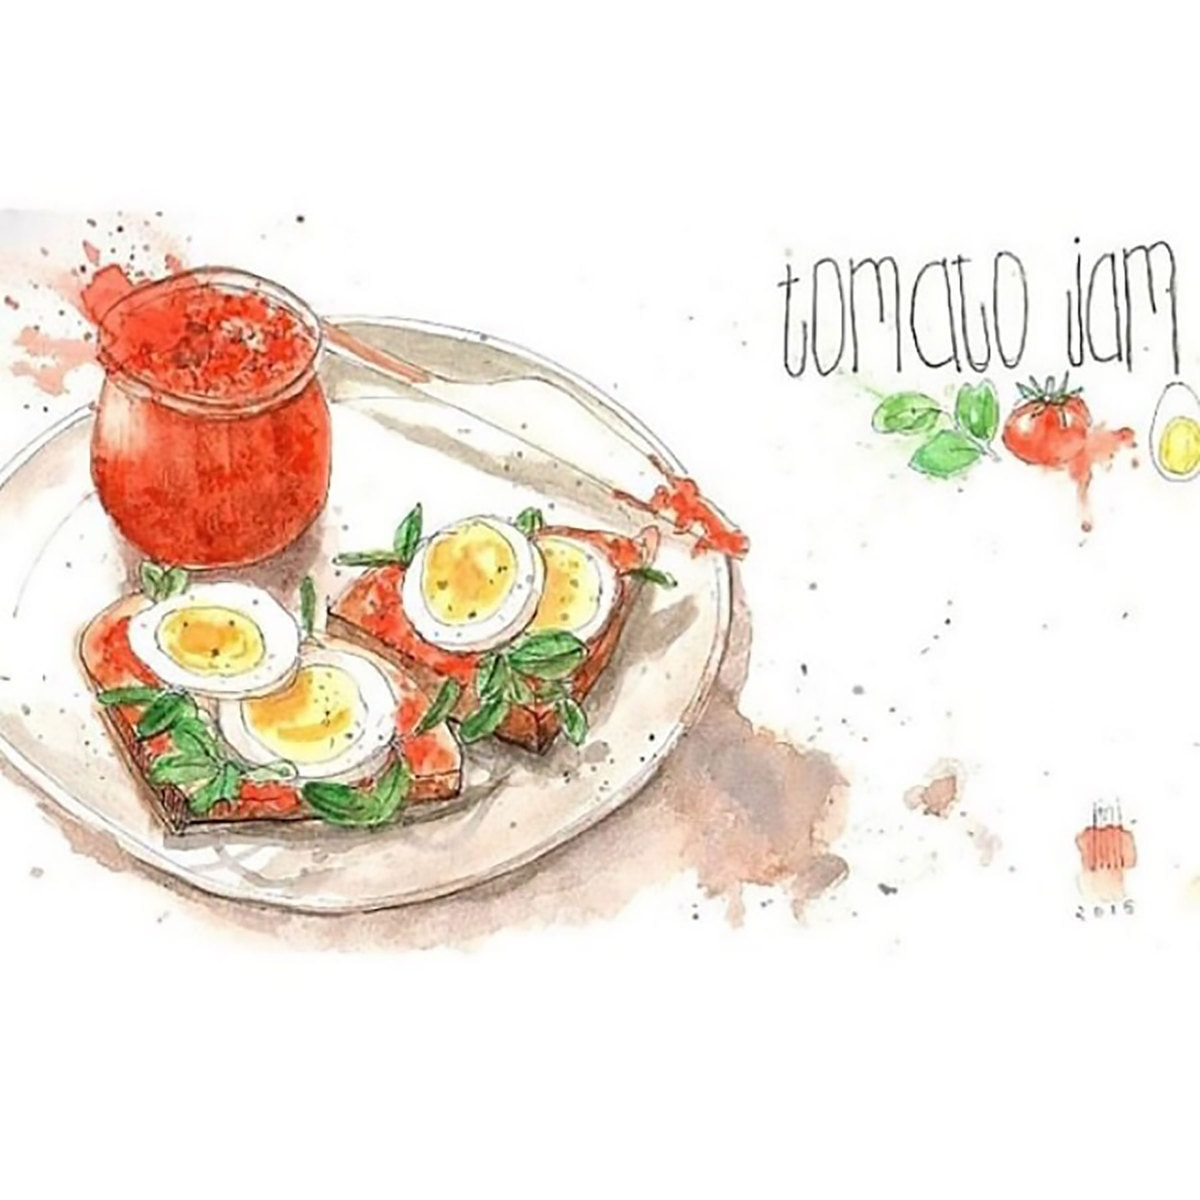 Tomato Jam Illustration